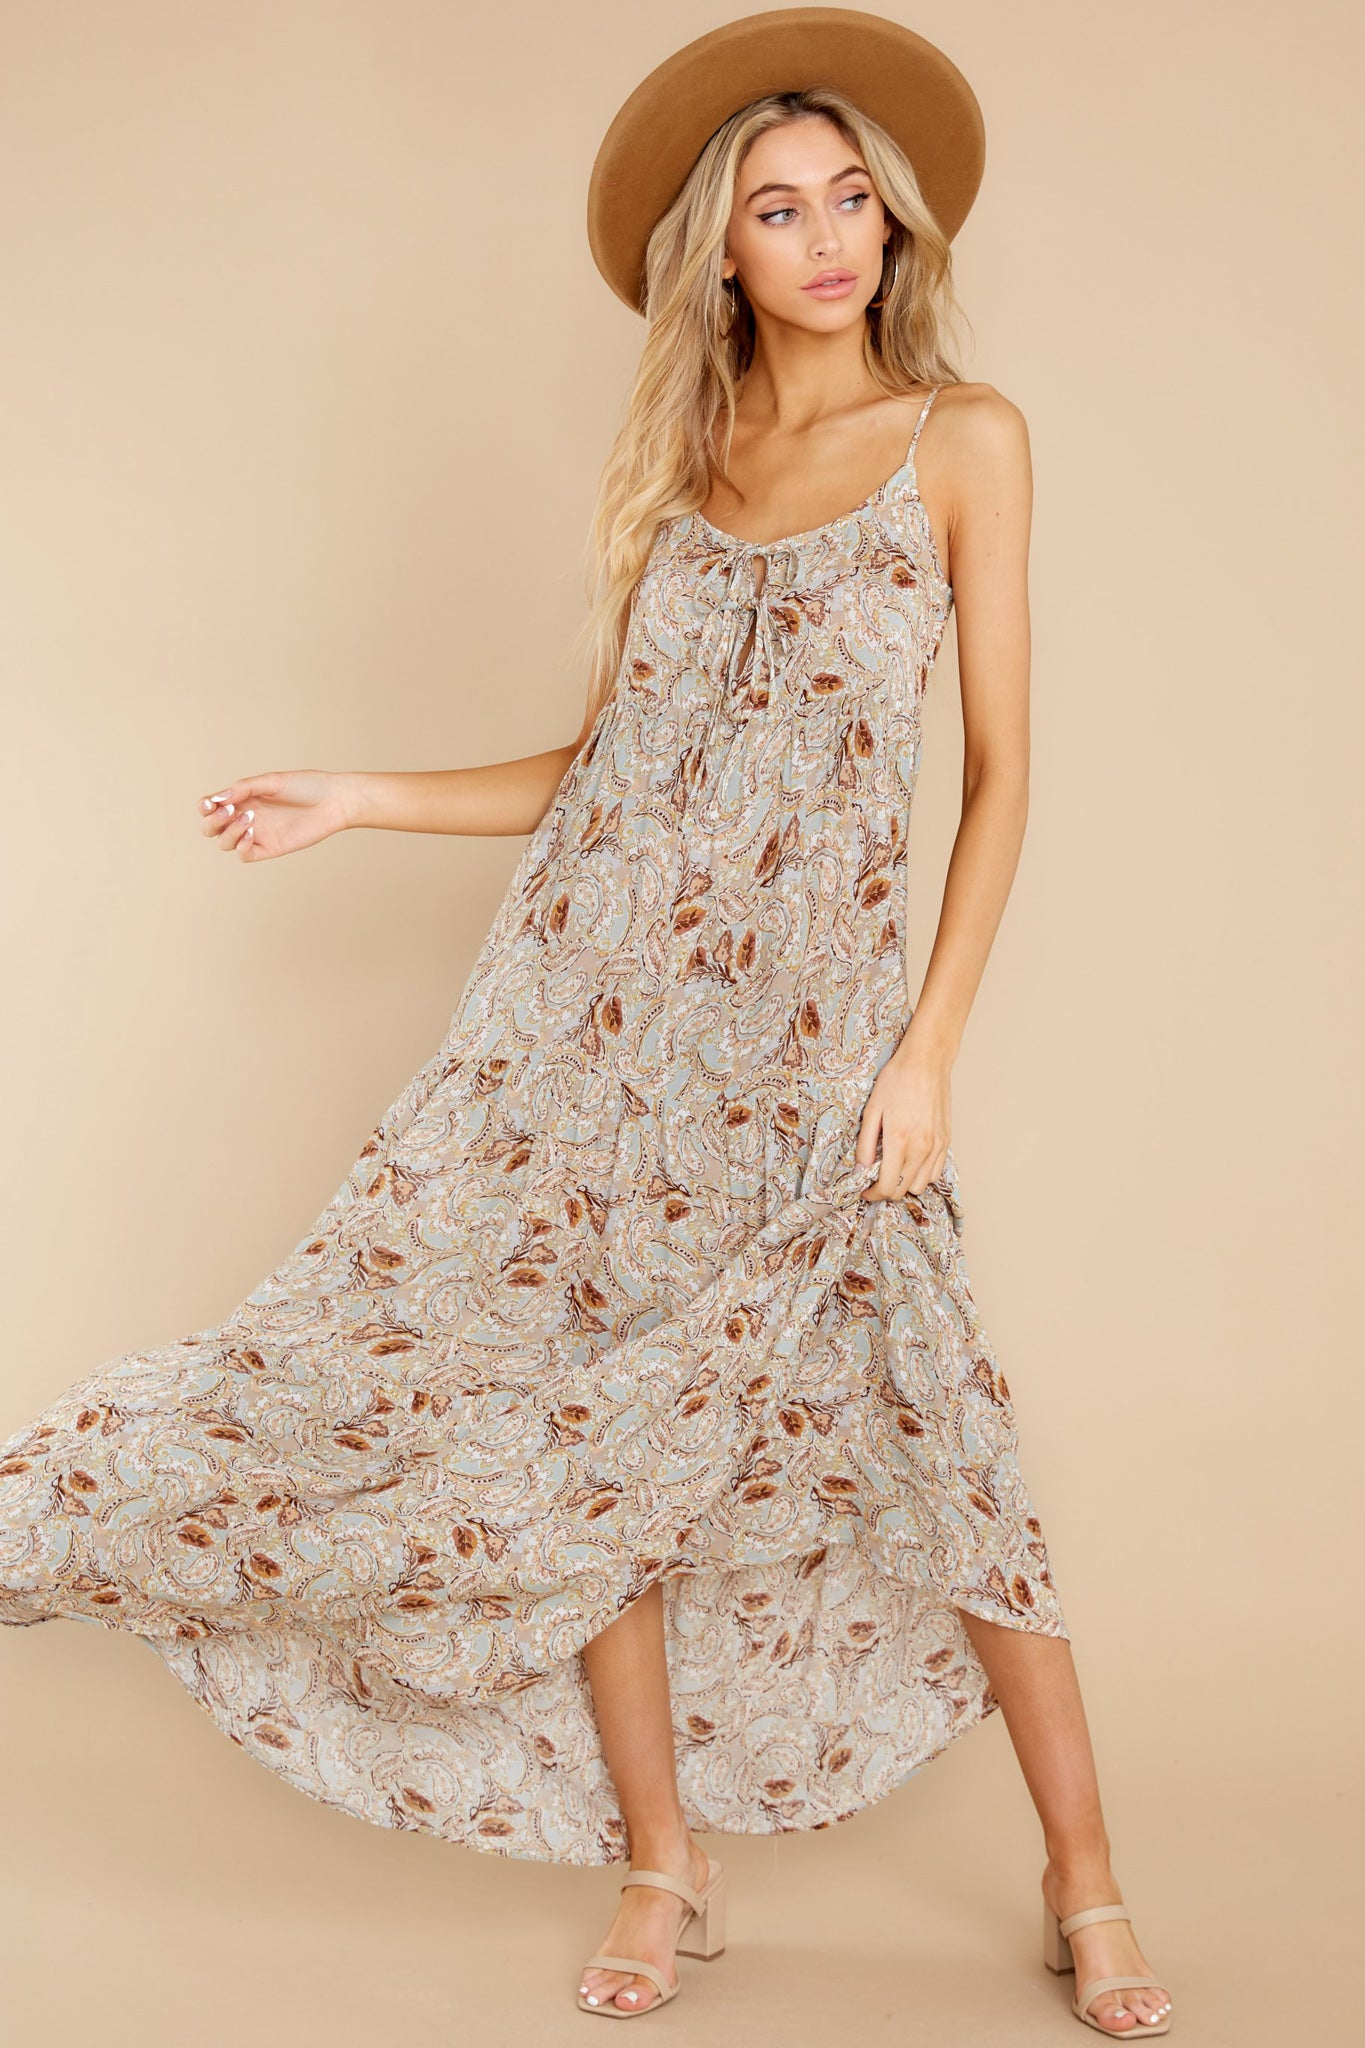 1 Fallen For You Sage And Rust Multi Print Maxi Dress at reddress.com